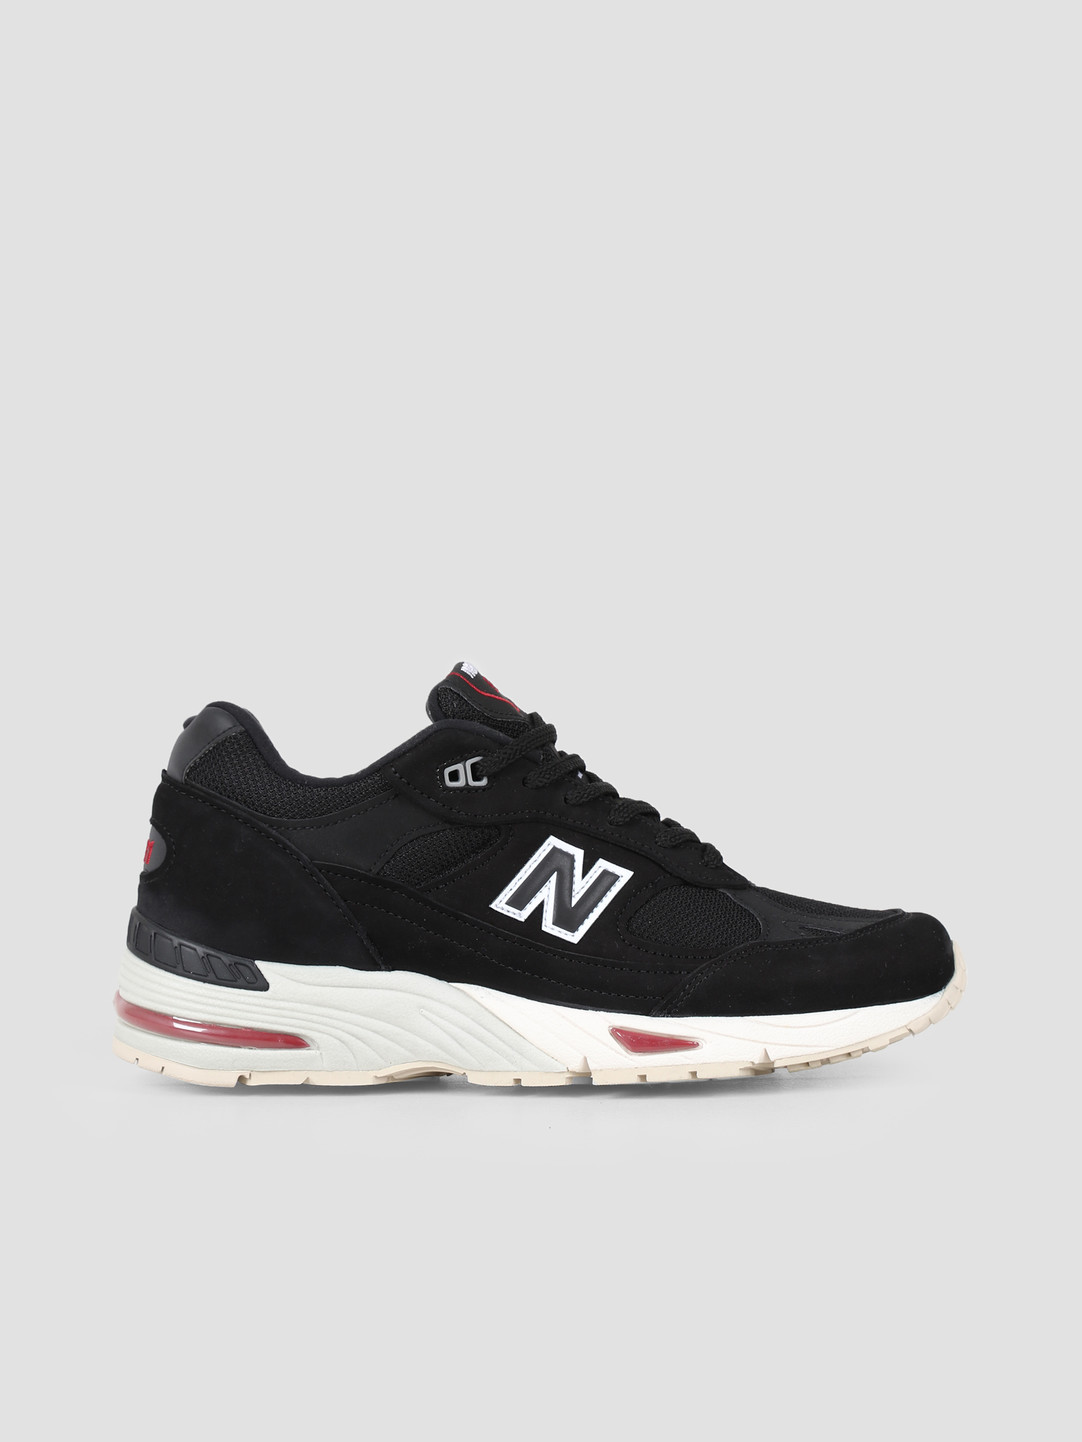 New Balance New Balance M991 D Nkr Black Red 737851-60